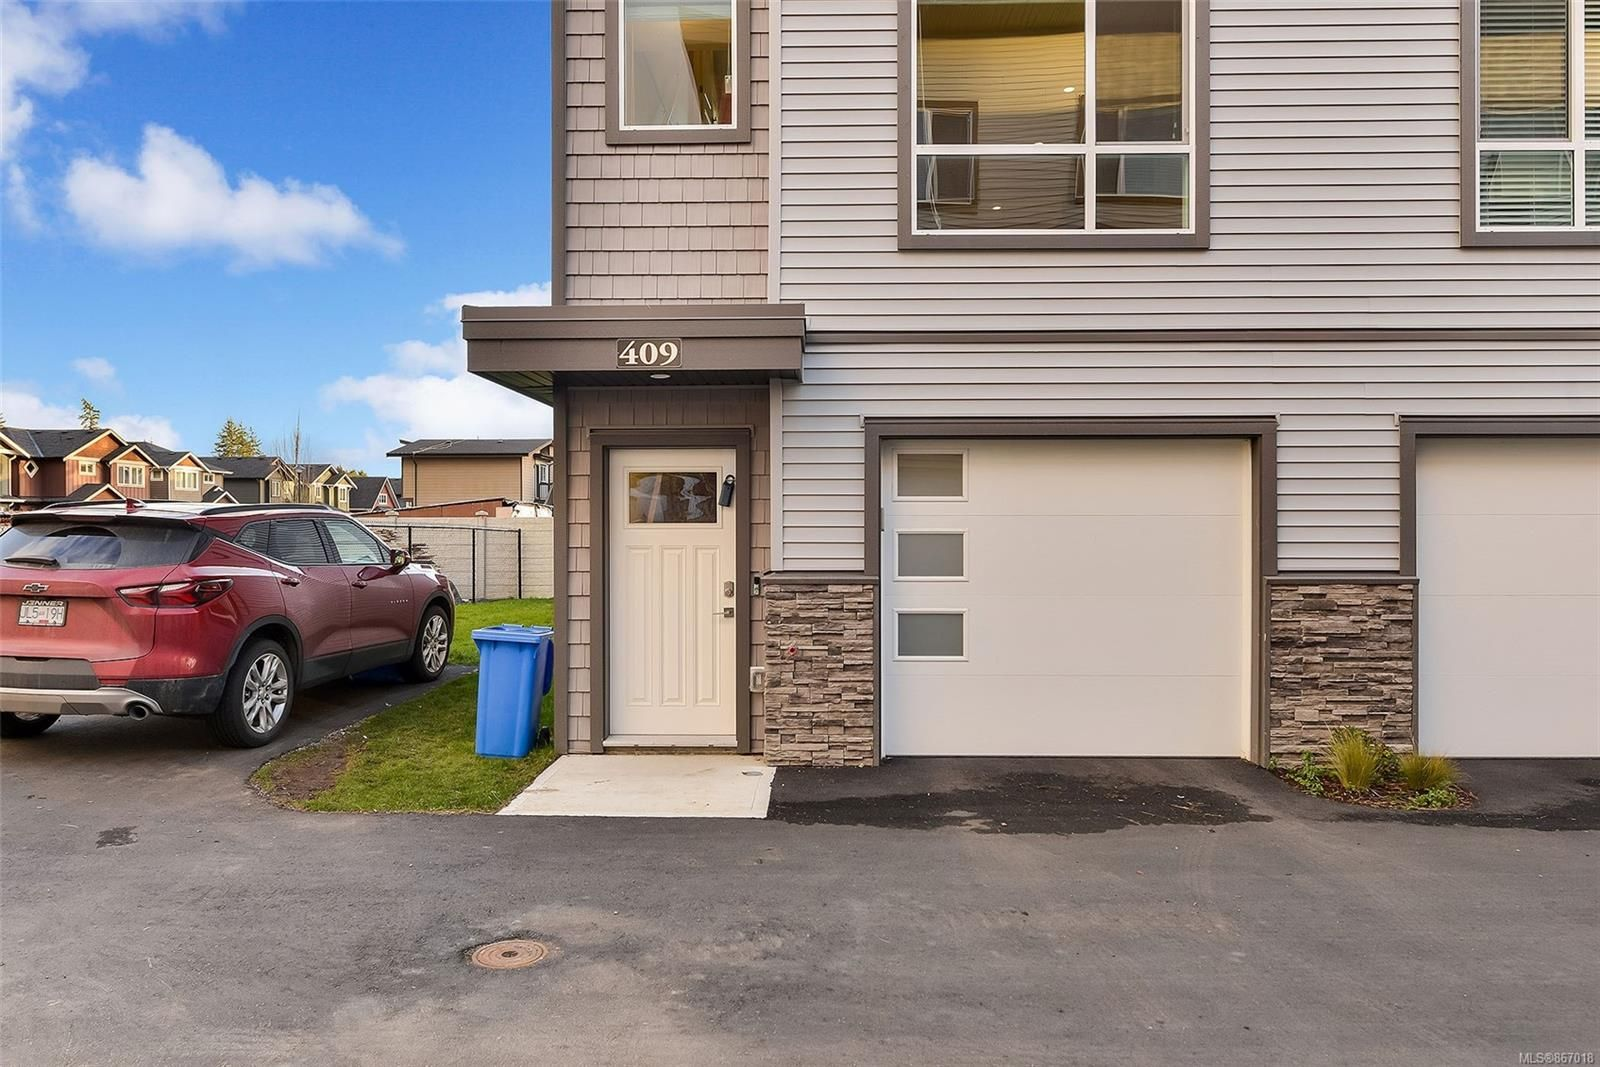 Main Photo: 409 3351 Luxton Rd in : La Happy Valley Row/Townhouse for sale (Langford)  : MLS®# 867018